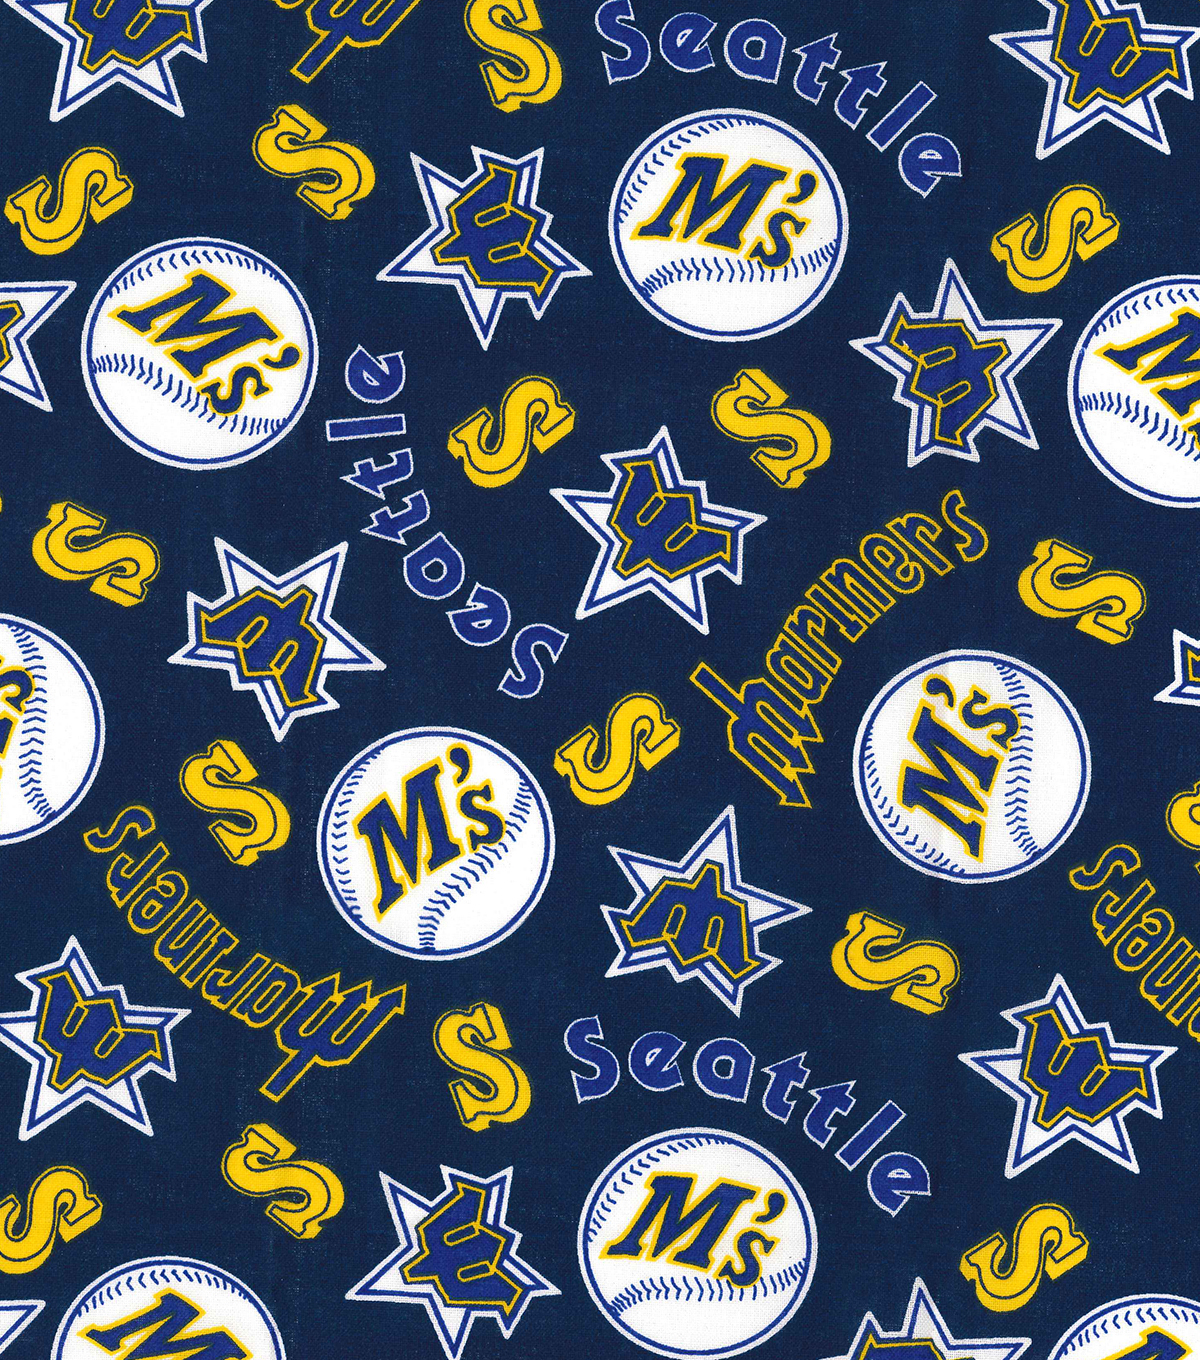 Seattle Mariners Cotton Fabric Navy Cooperstown Joann